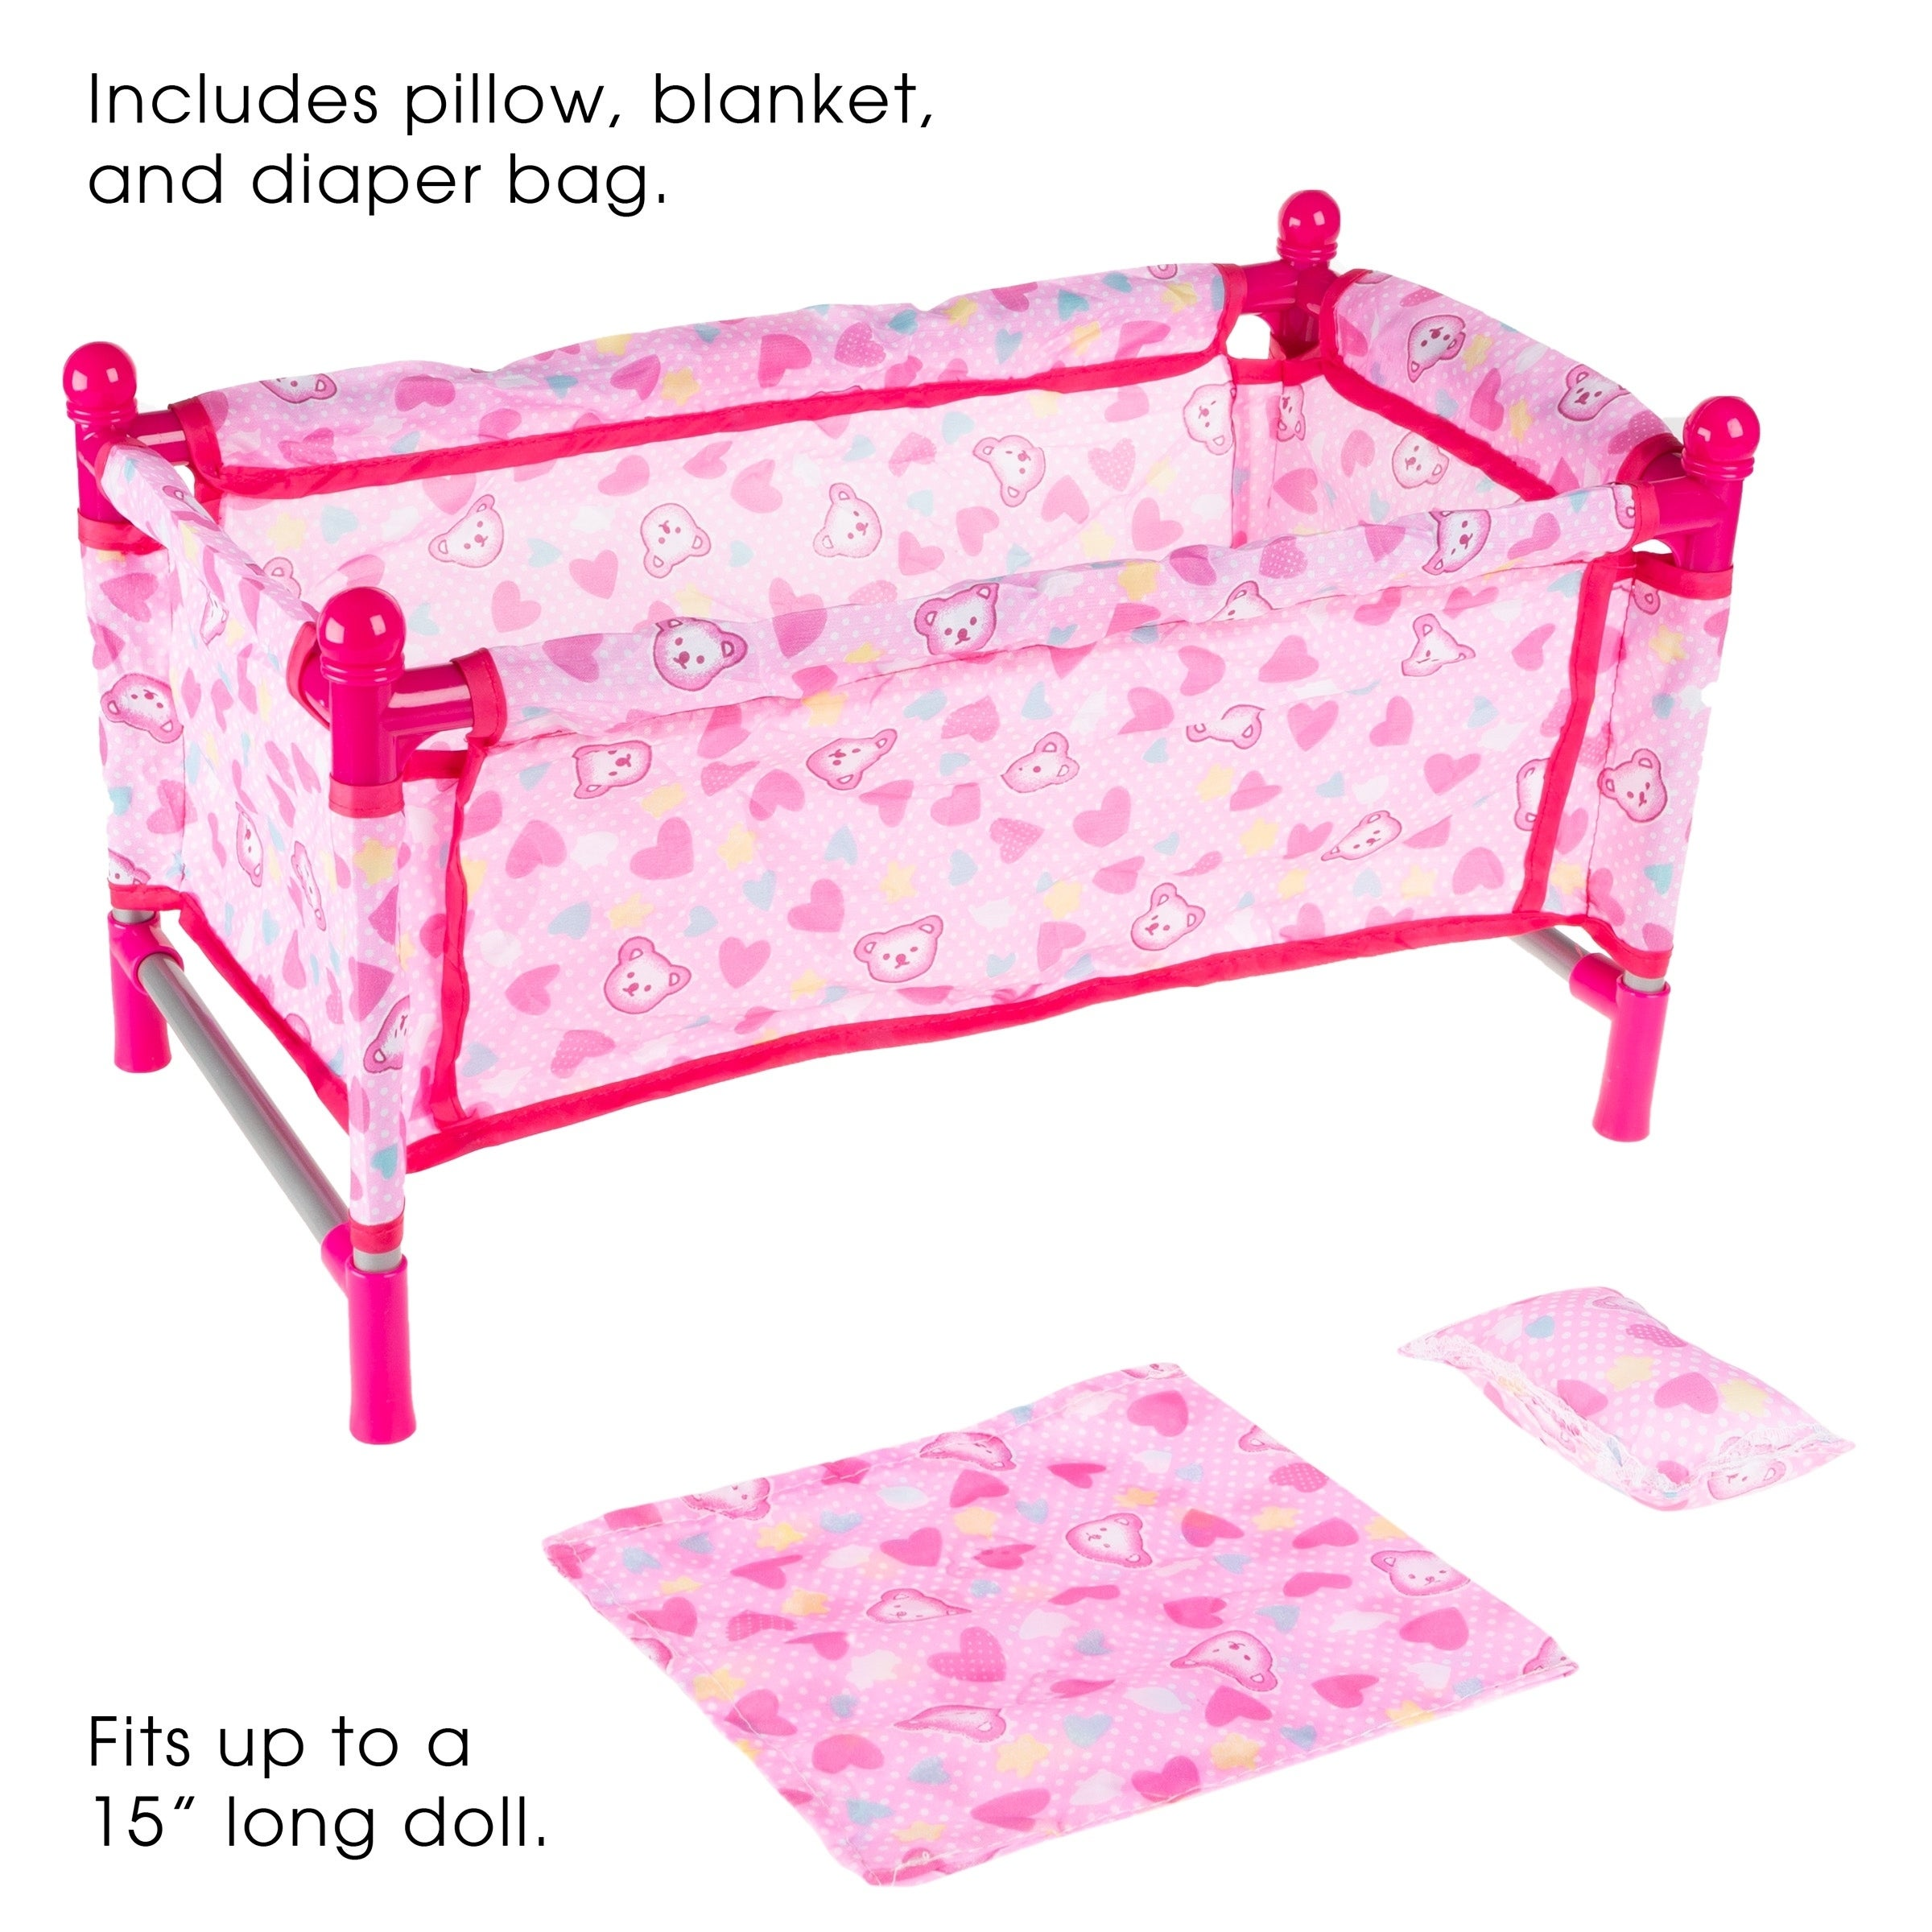 Baby Doll Bed And Playpen Play Crib For 15 Inch Dolls And Stuffed Animals With Pillow Blanket And Carrying Bag By Hey Play Overstock 28082603